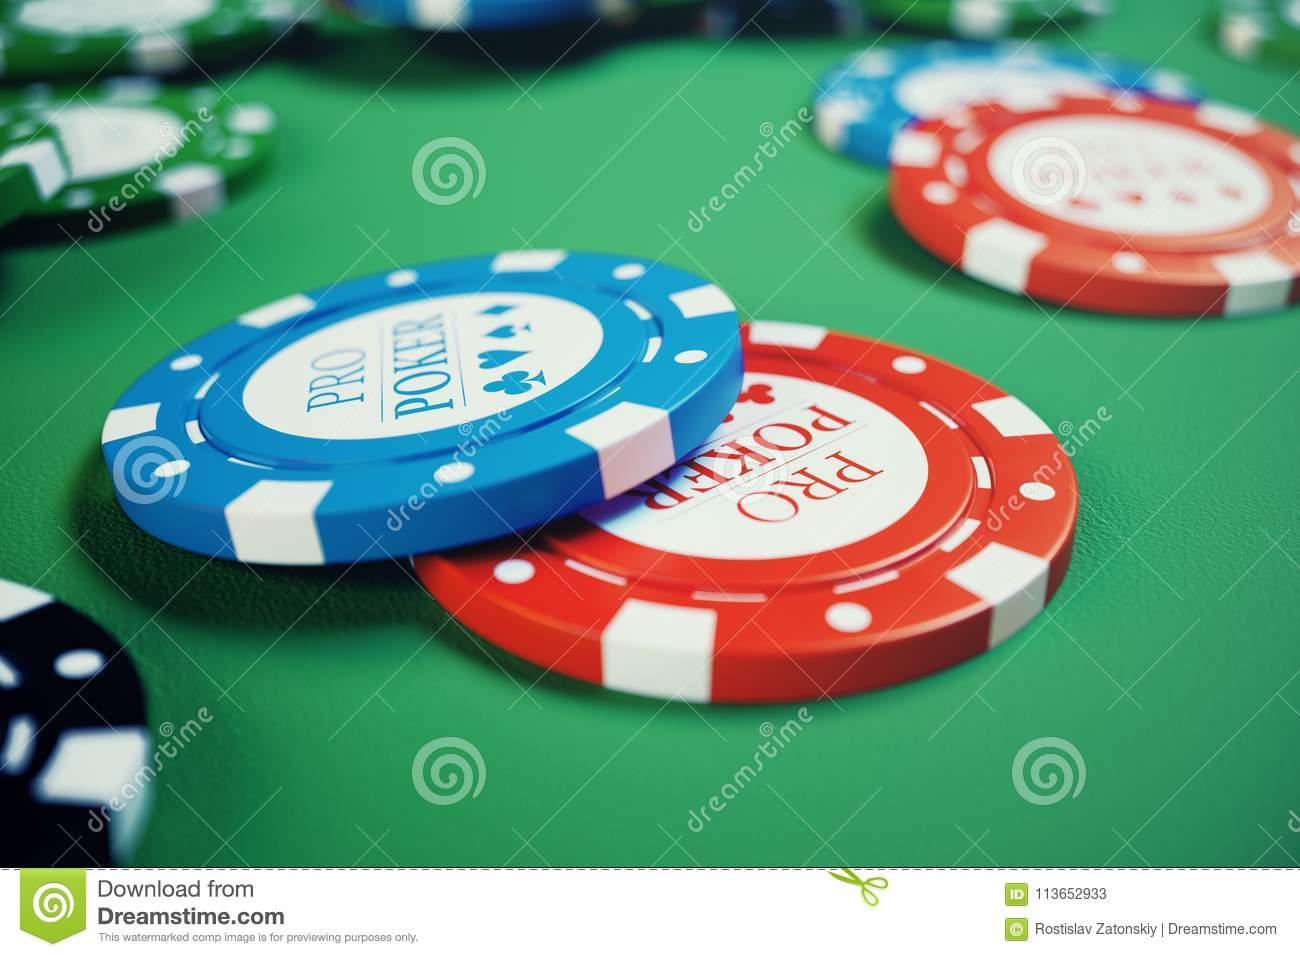 3D illustration casino game. Chips, playing cards for poker. Poker chips, red dice and money on green table. Online